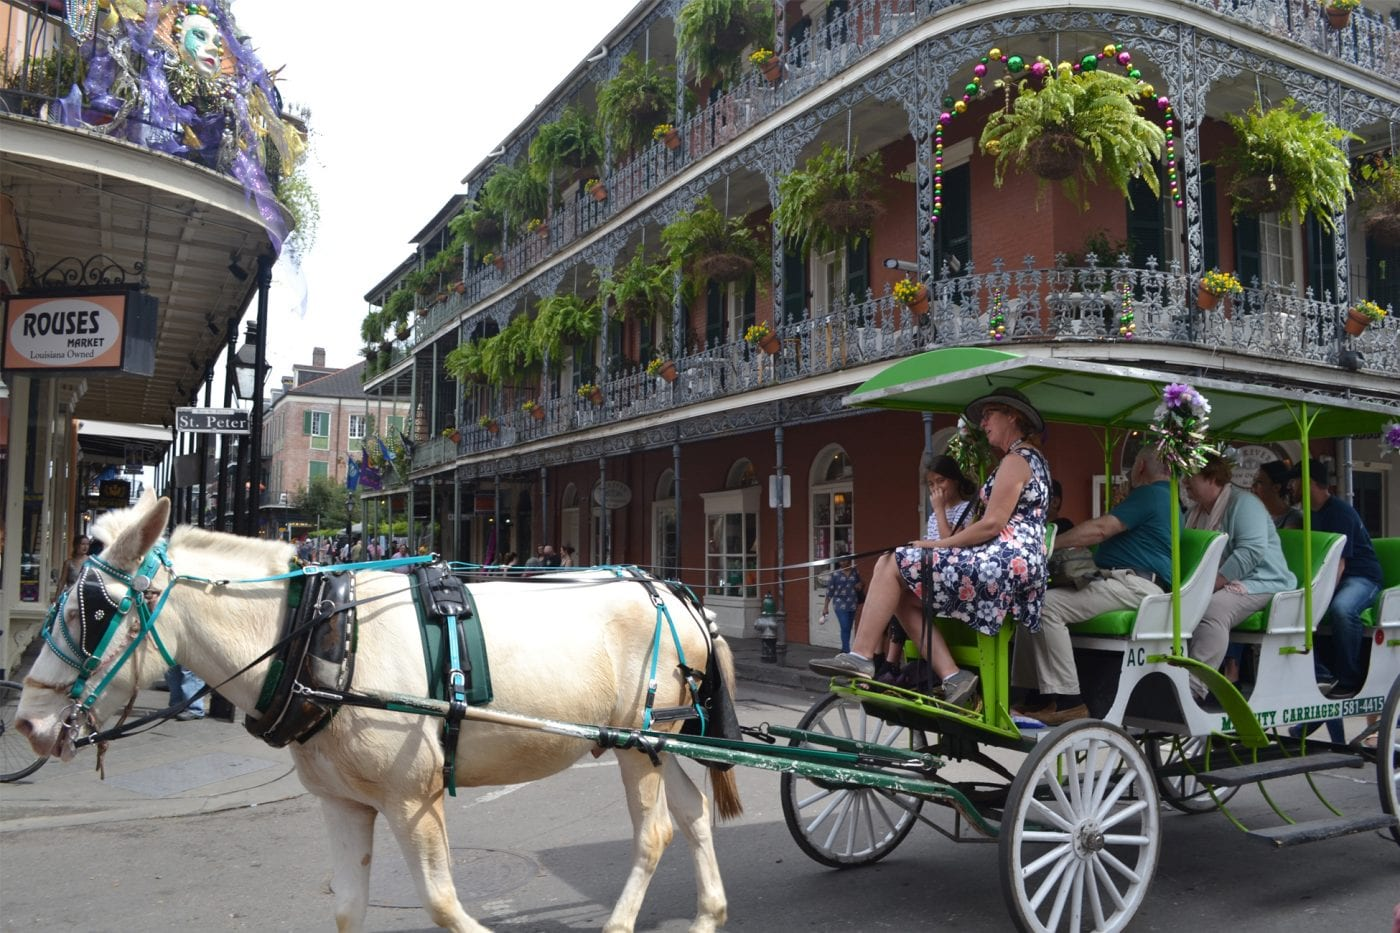 new orleans the labranche house, the most photographed building in nola